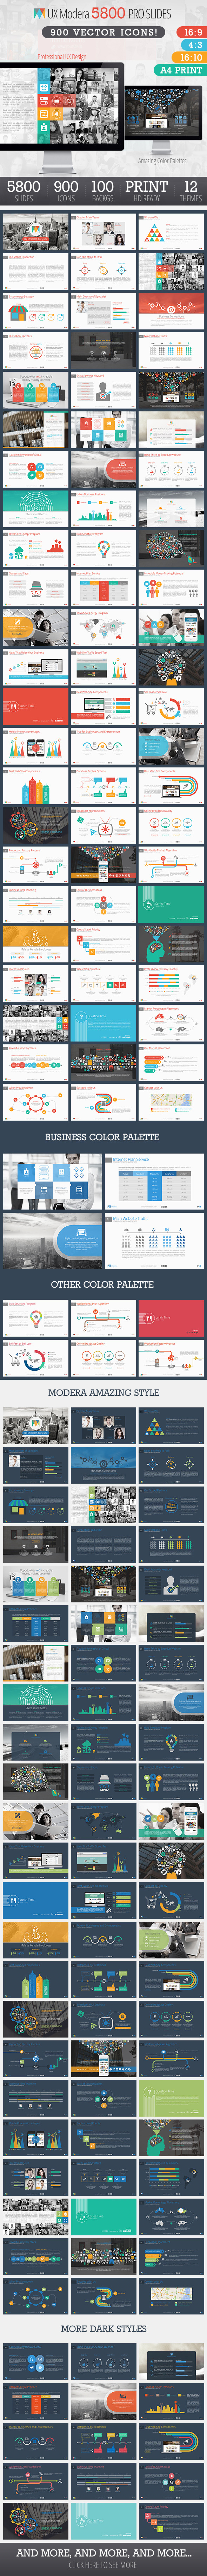 GraphicRiver UX Modera Presentation Template 8837339